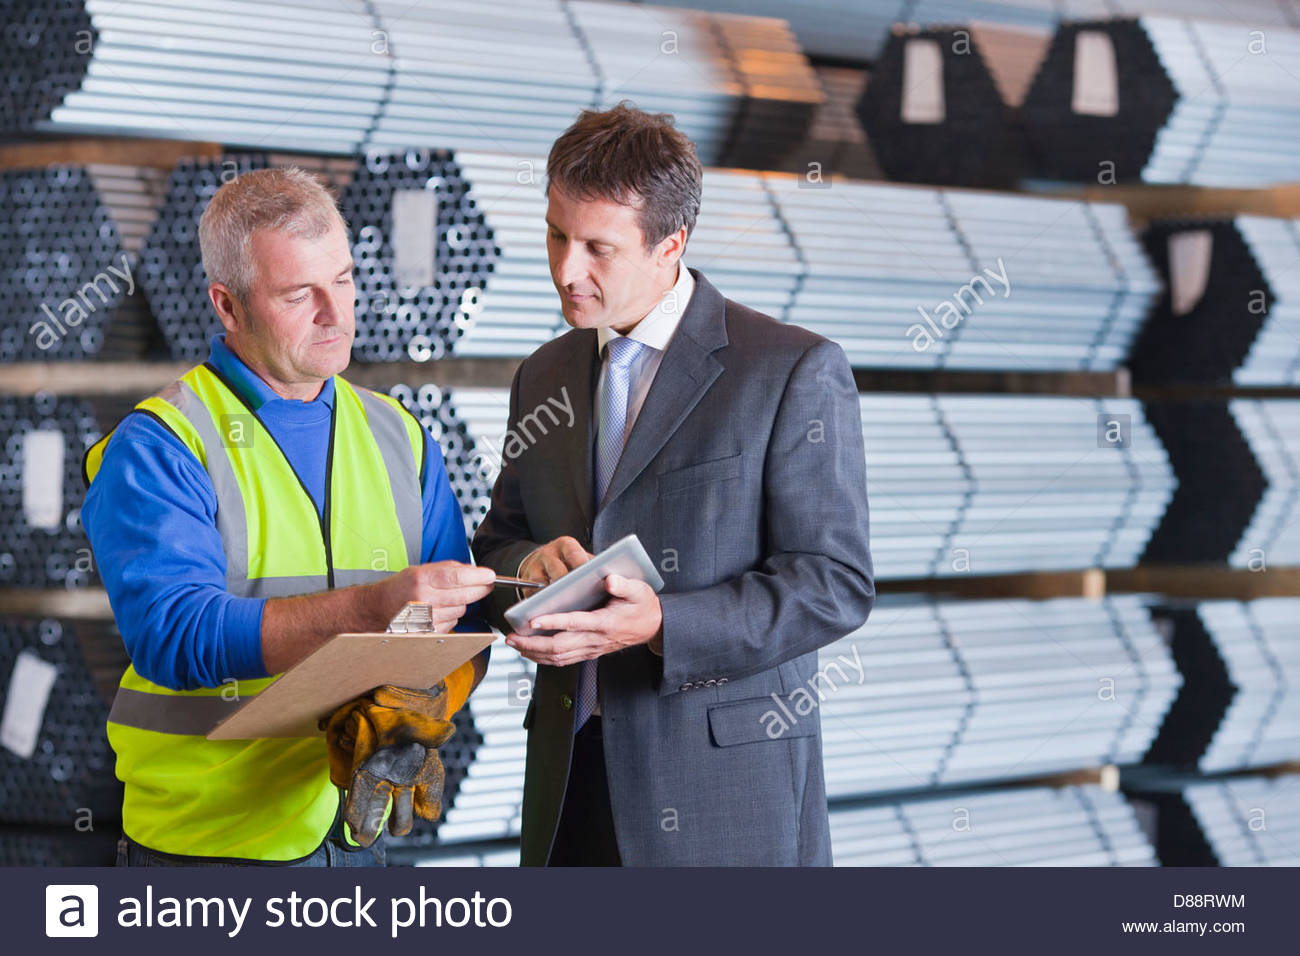 Businessman and worker with clipboard and digital tablet in front of steel tubing - Stock Image